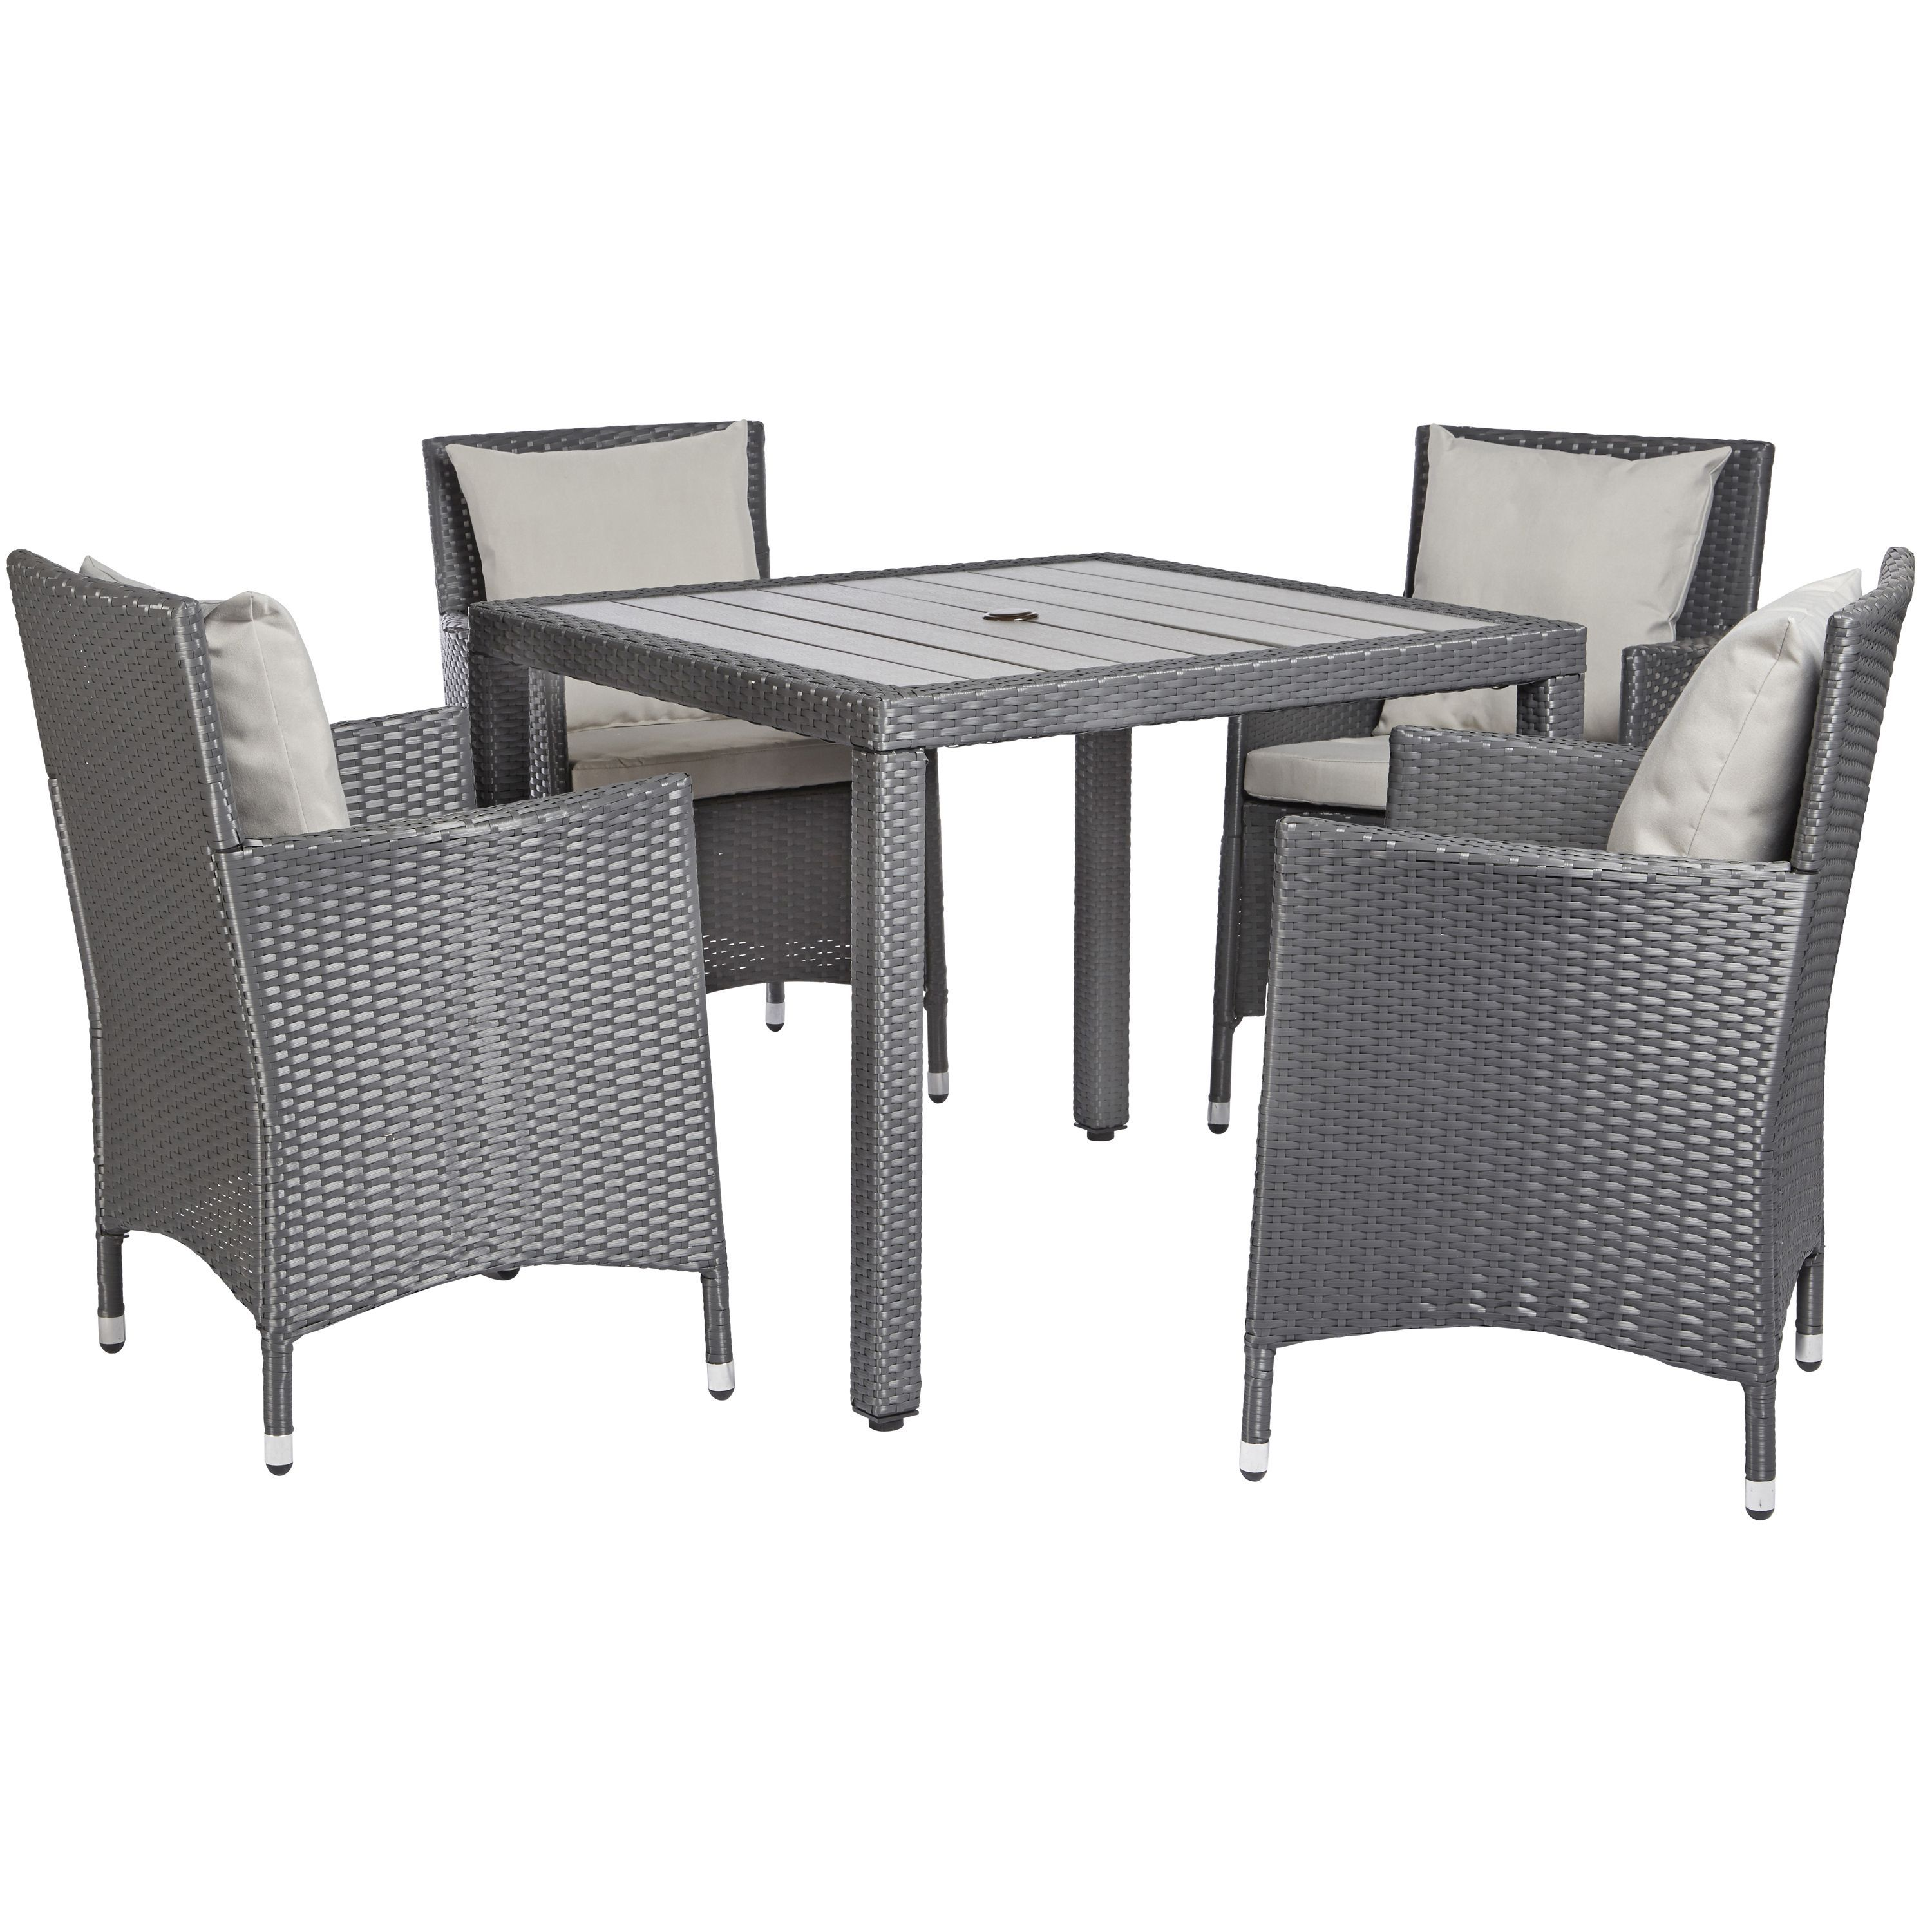 600 The Angelo Home 5 Piece Dining Set Features A Square